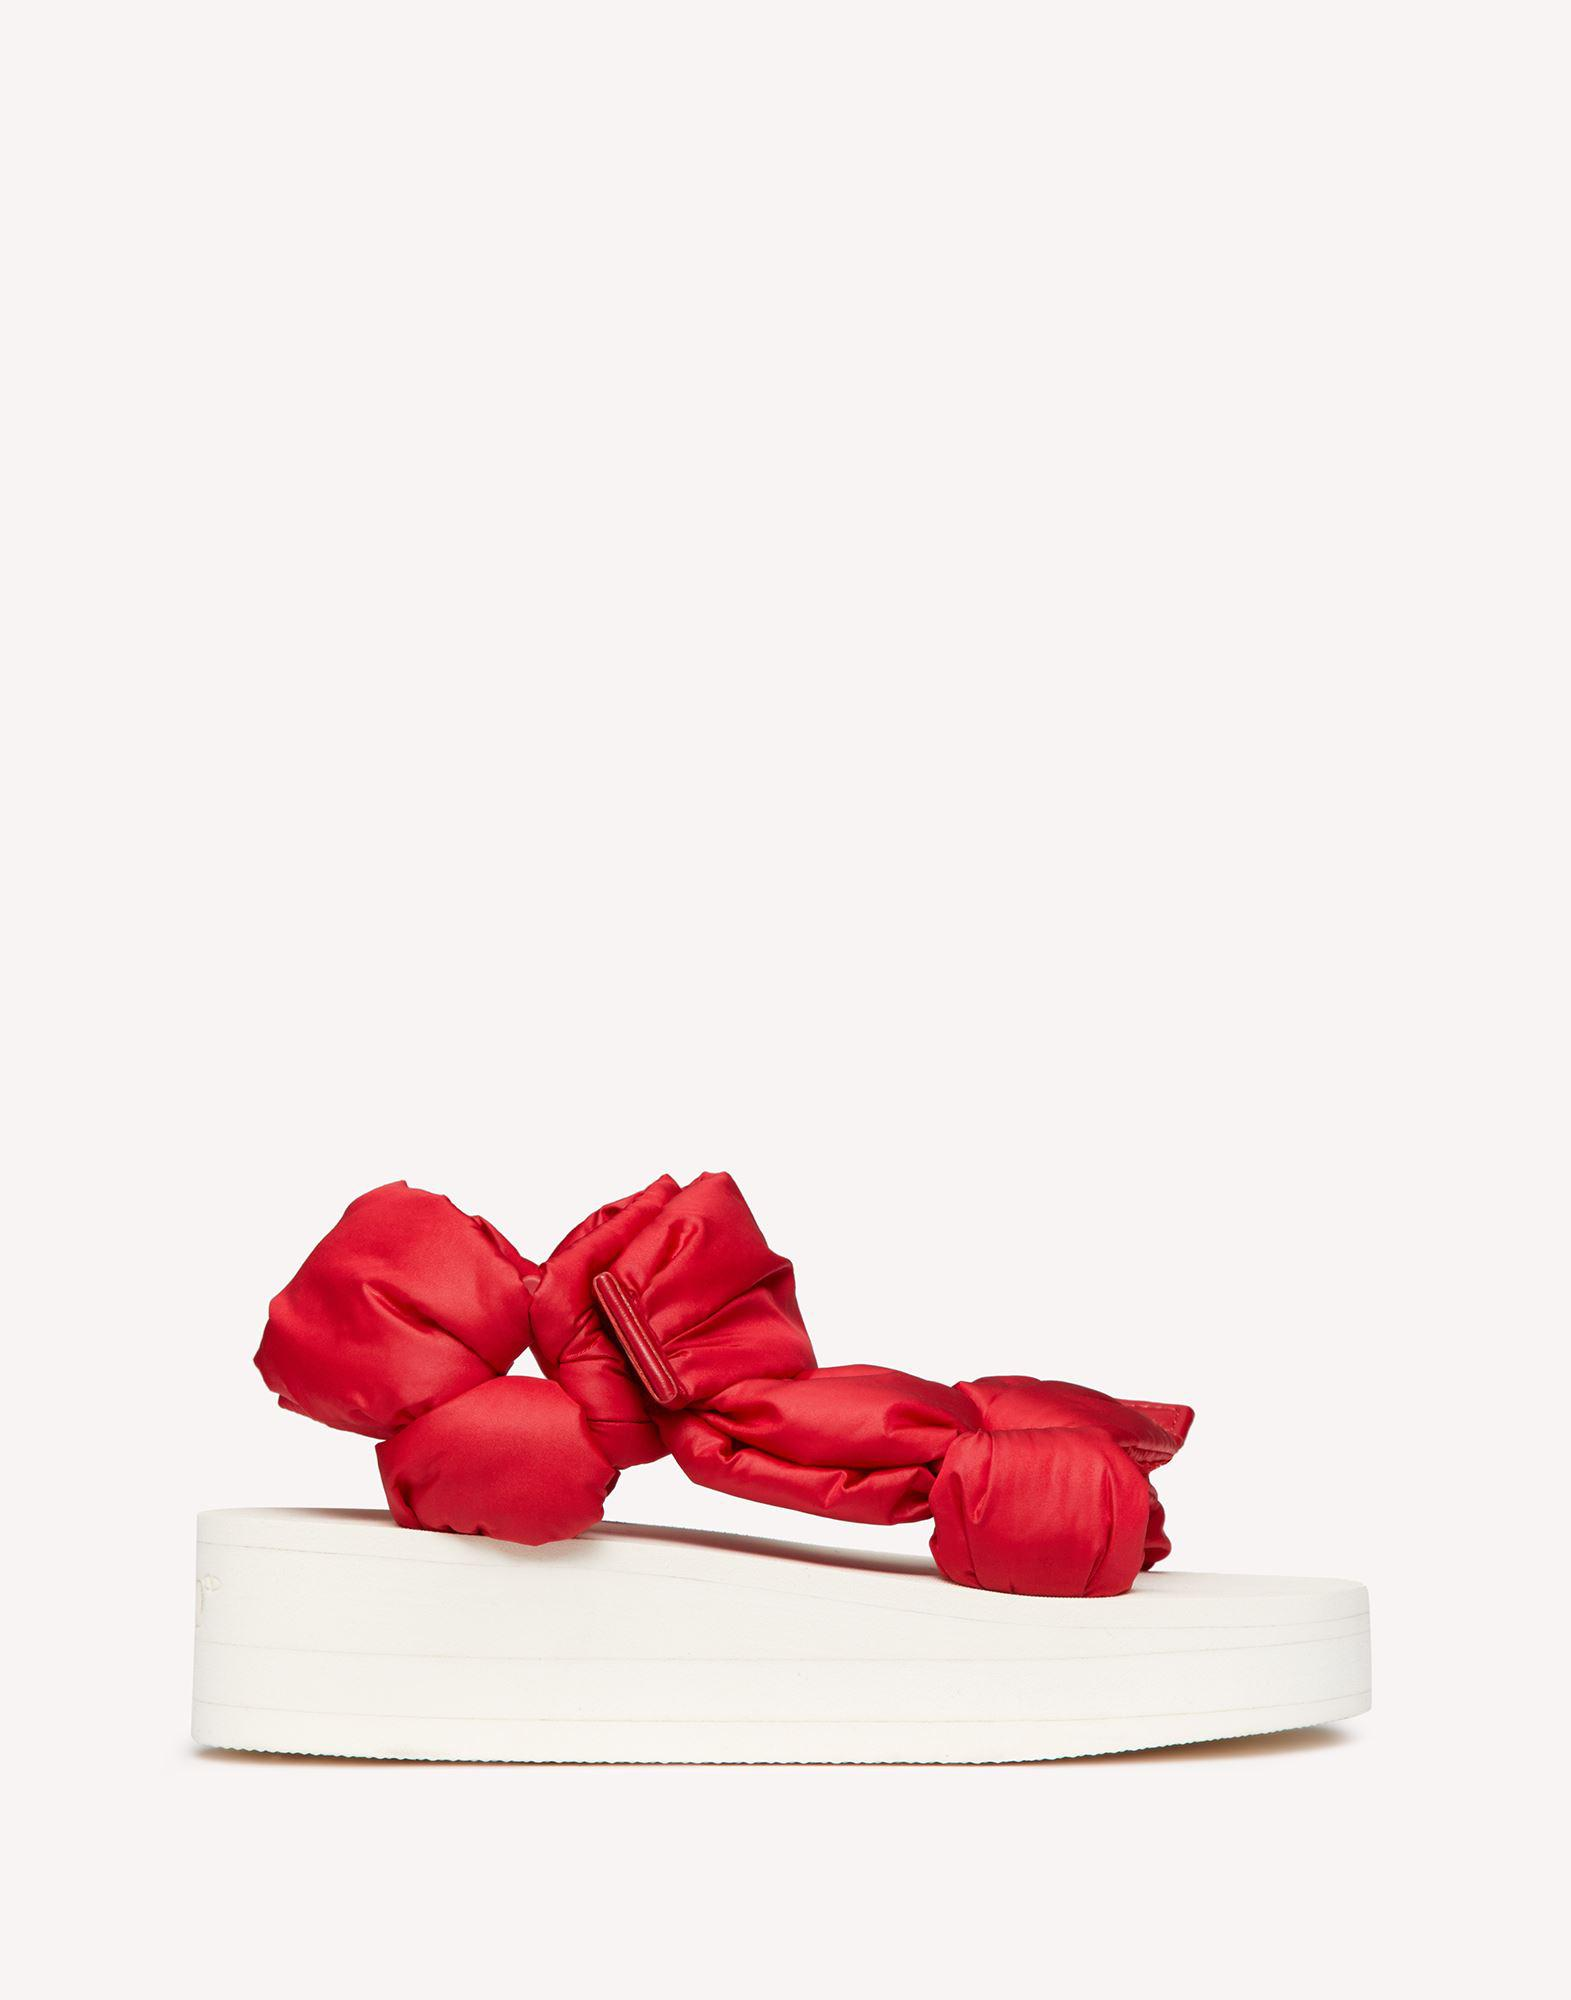 RED PUFFY STRAP SANDAL